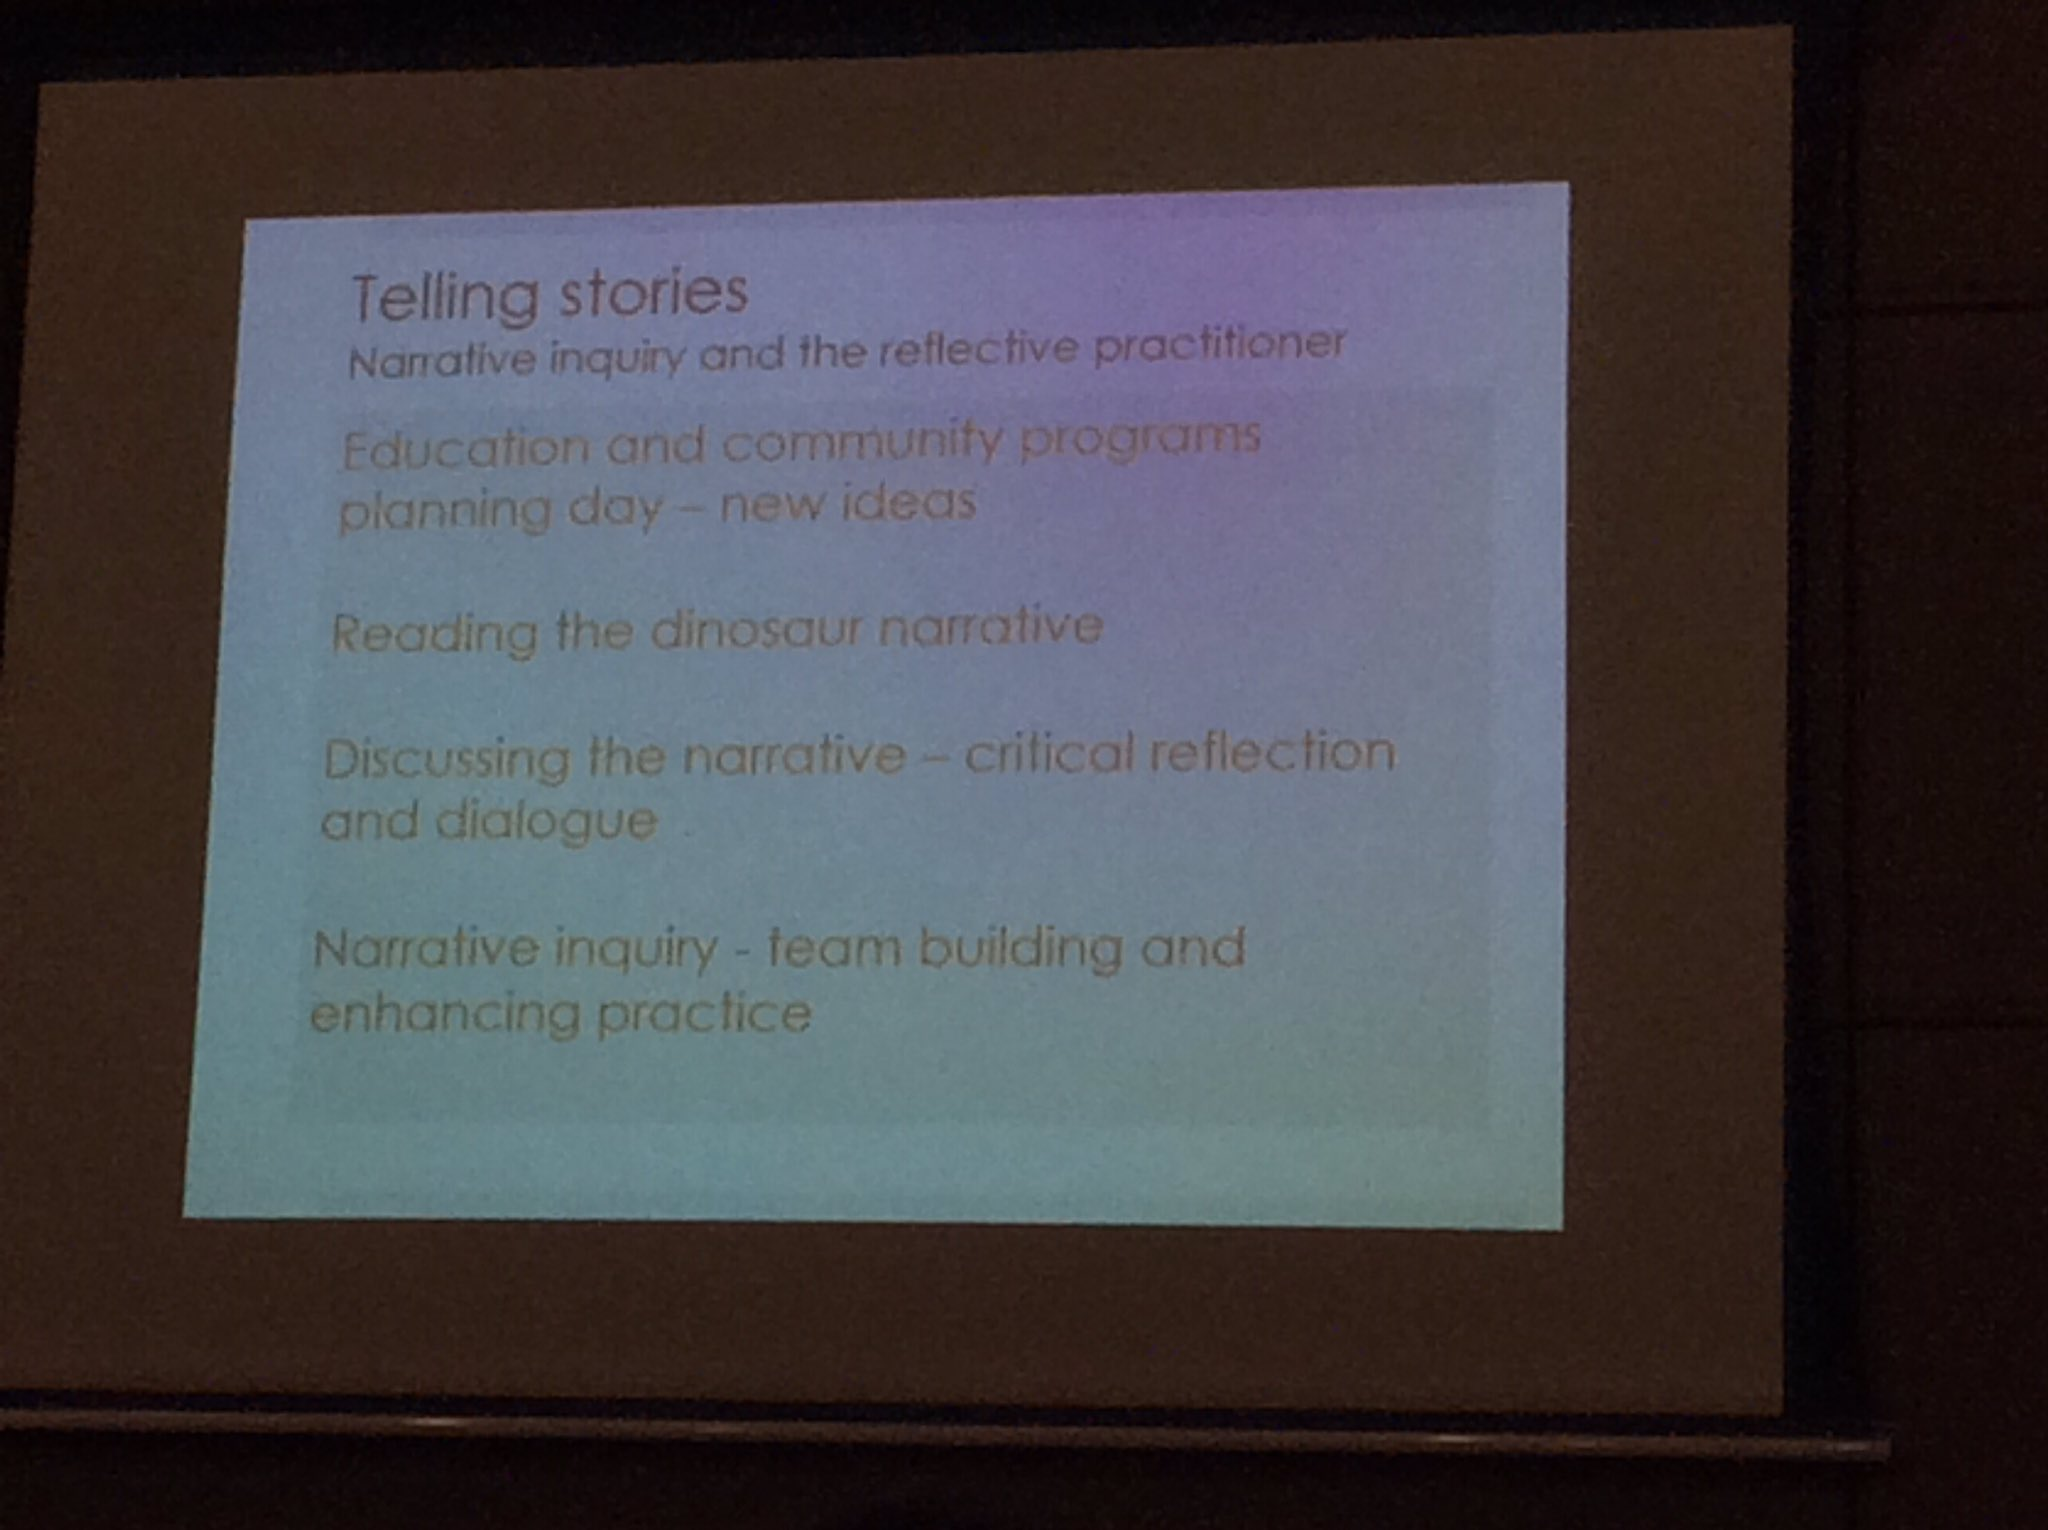 Narrative Inquiry & the reflective practitioner @museumsvictoria #VRF17 @lizmvhums shares project outcomes https://t.co/qz6LStXEXe